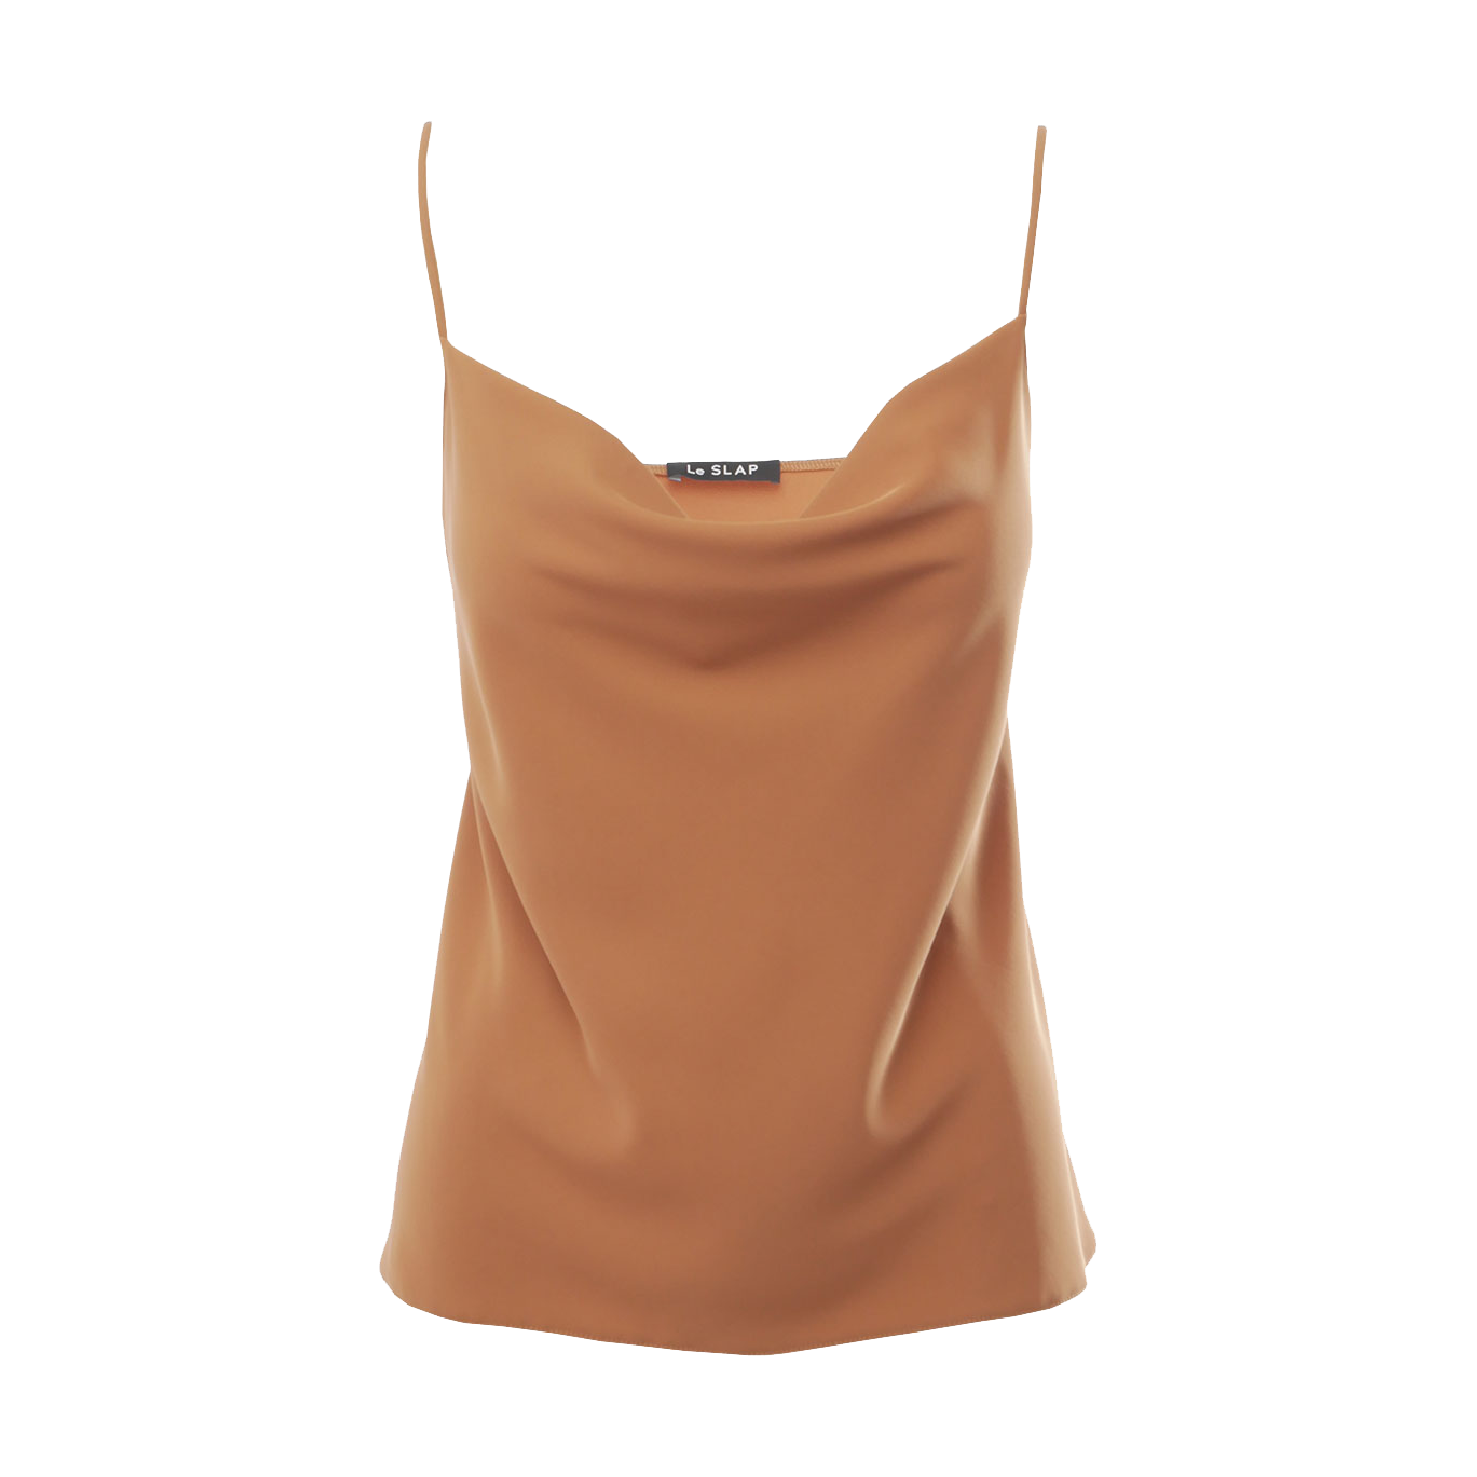 Slip Top Nude | NUDIST COLLECTION